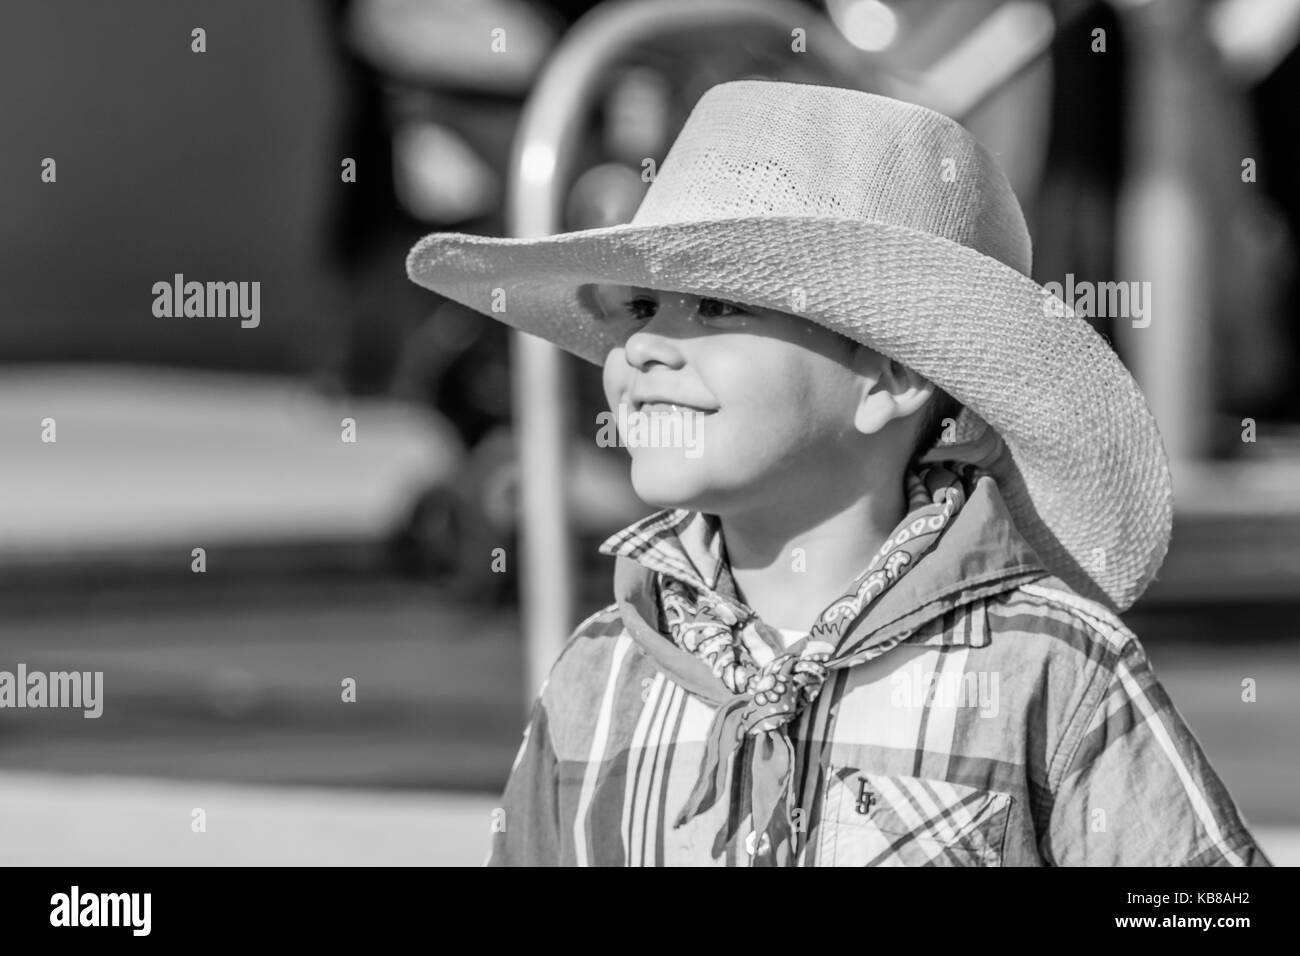 13230dbe4836b Young boy dressed in western attire smiles during portrait shoot - Stock  Image